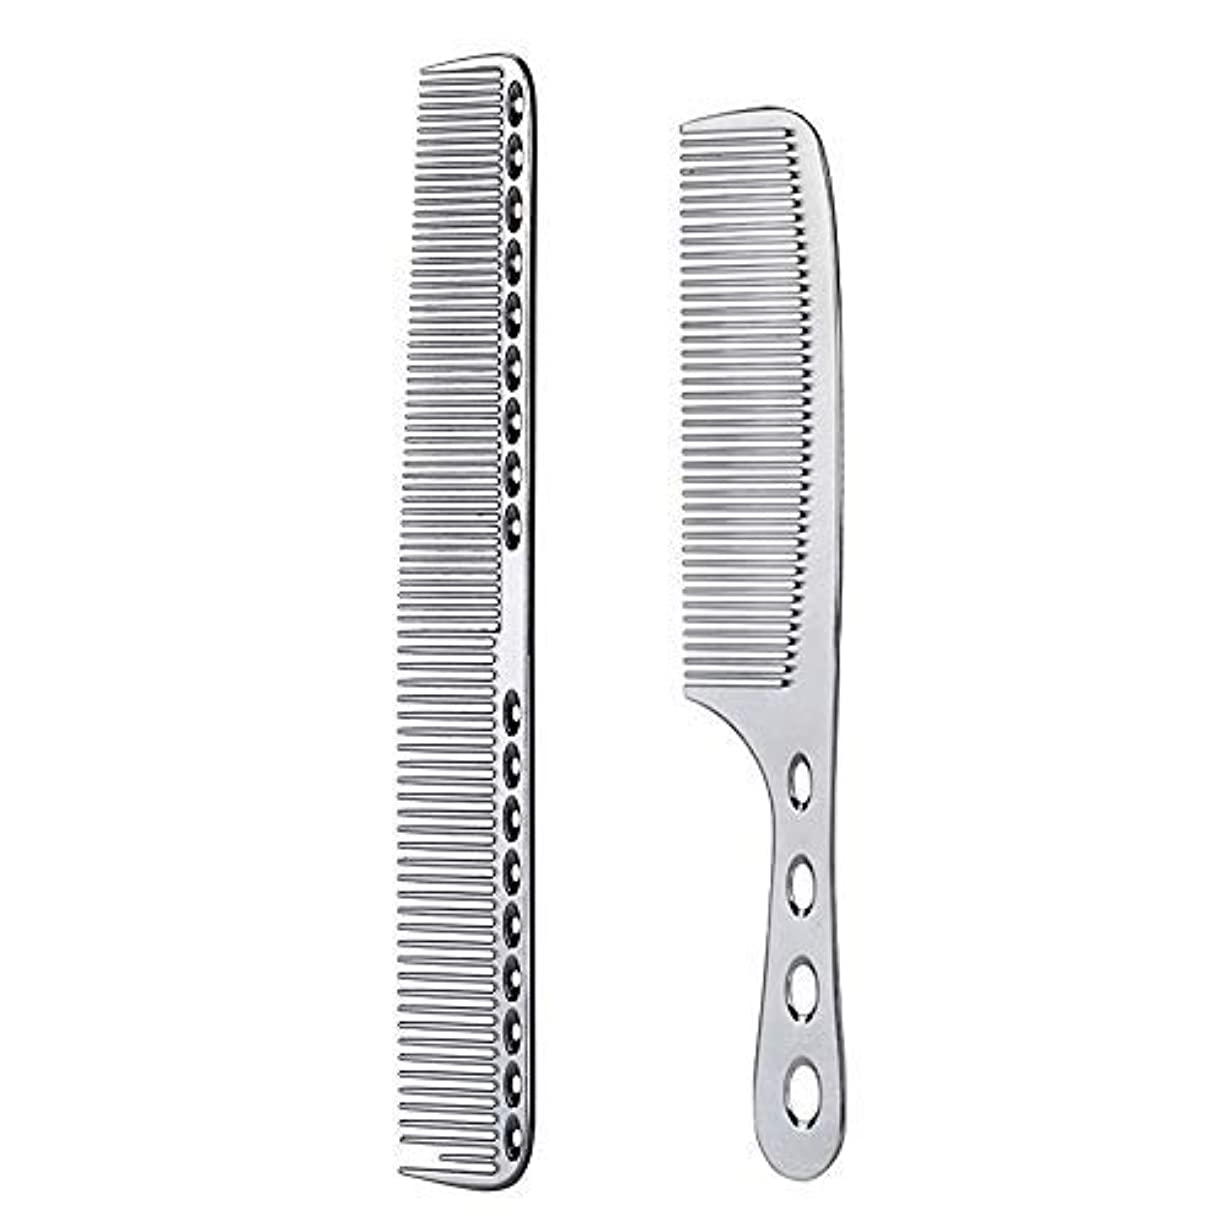 任意小石生産的2 pcs Stainless Steel Hair Combs Anti Static Styling Comb Hairdressing Barbers Combs (Silver) [並行輸入品]